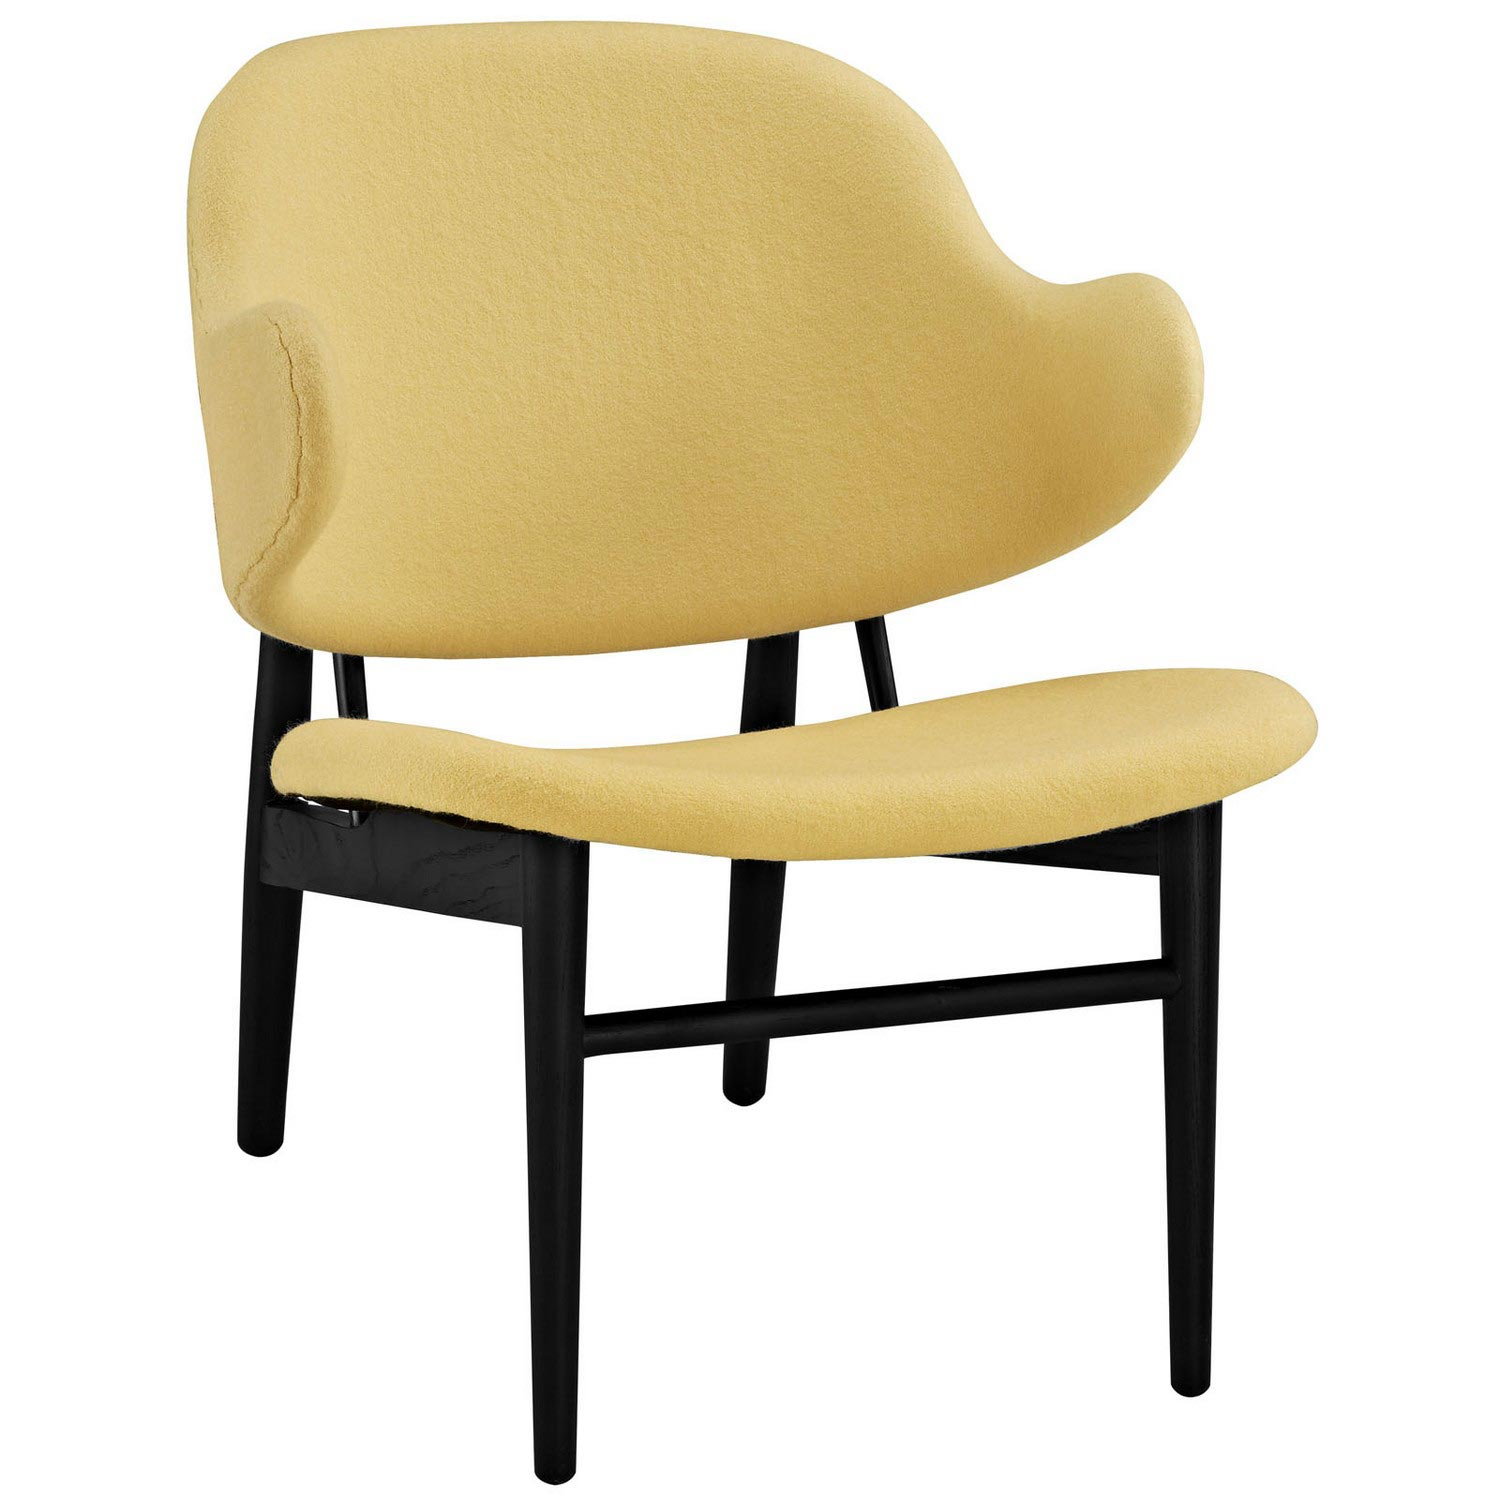 Modway Suffuse Lounge Chair - Black/Yellow